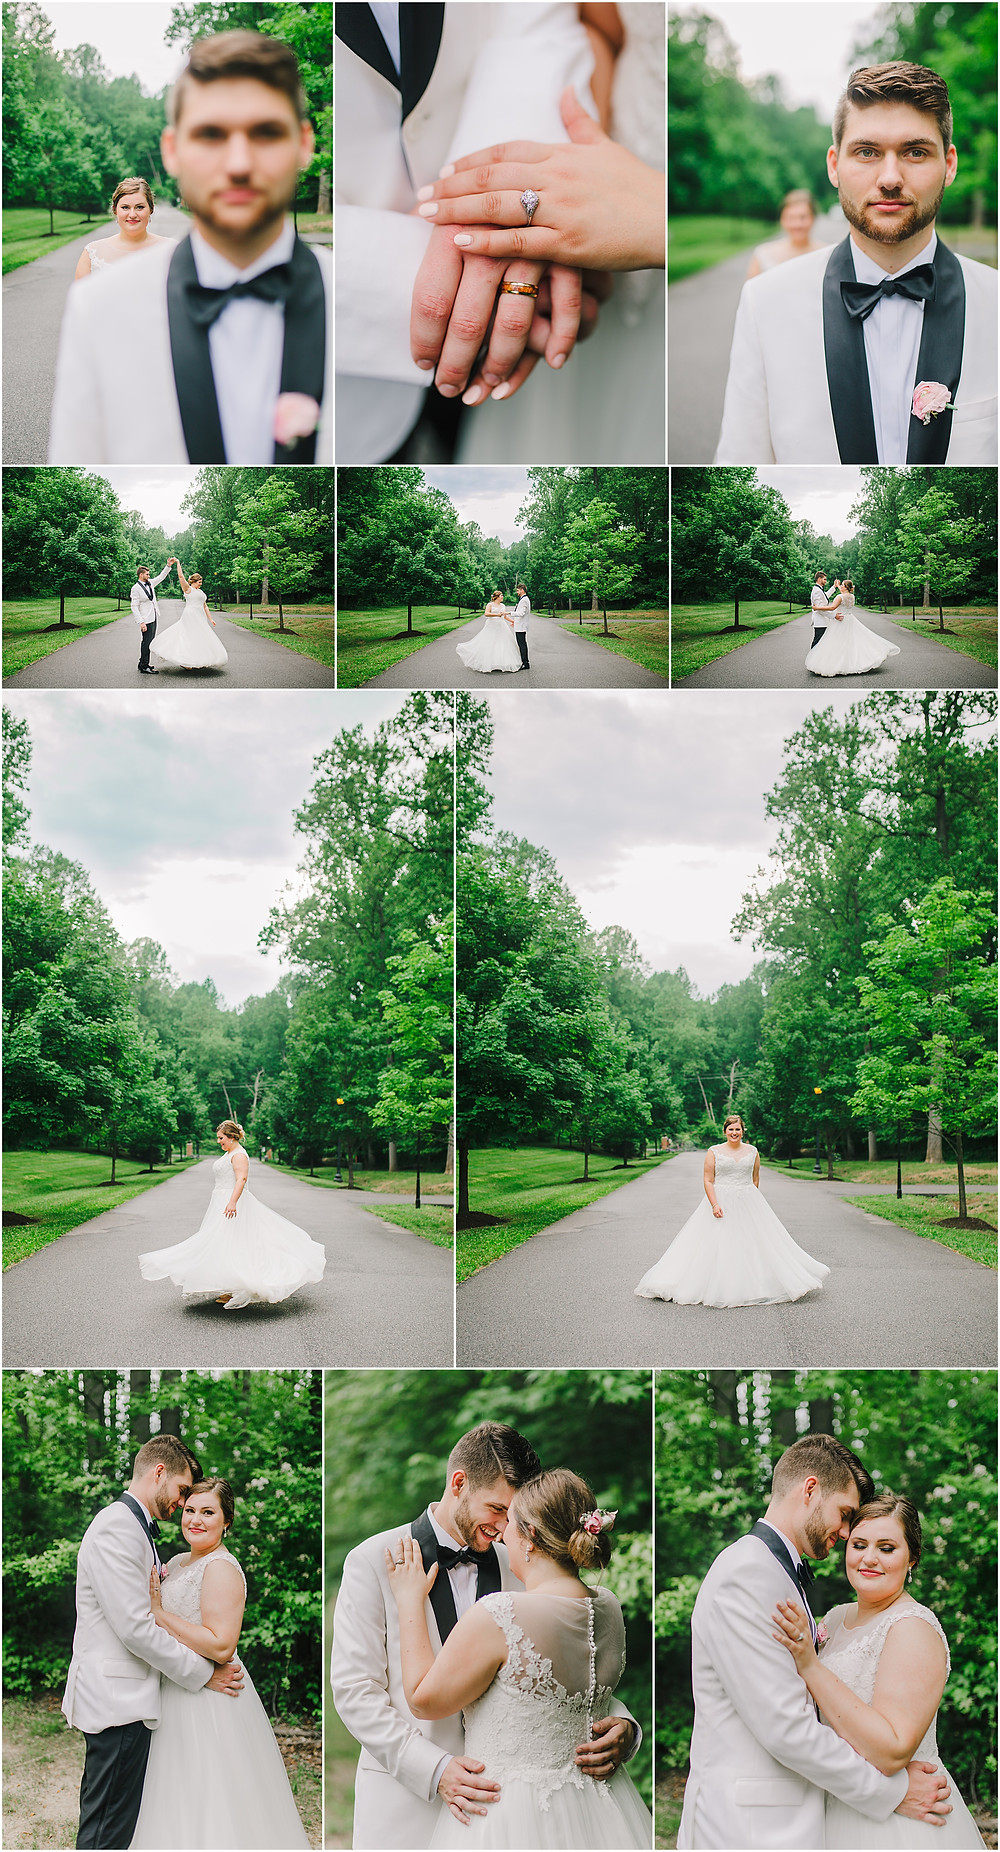 Twirling Spring Bride and Groom Portraits during the reception - Maryland Wedding Photography